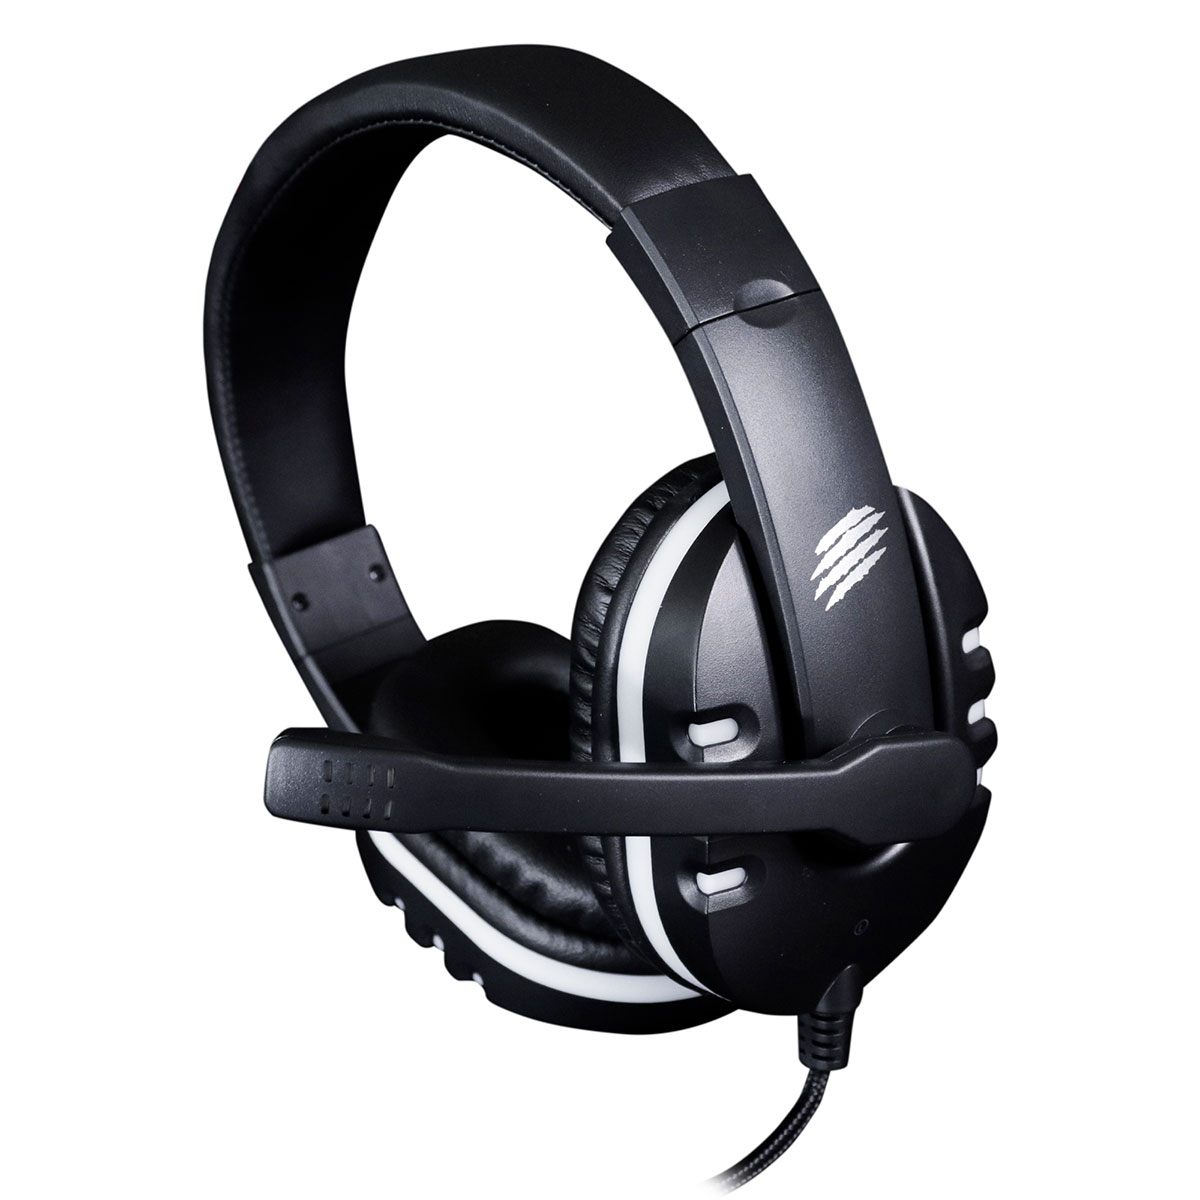 Headset Gamer OEX Action-X HS211, P3 (3.5mm), Multiplataforma - PS5, PS4, Xbox Series X|S, Xbox One